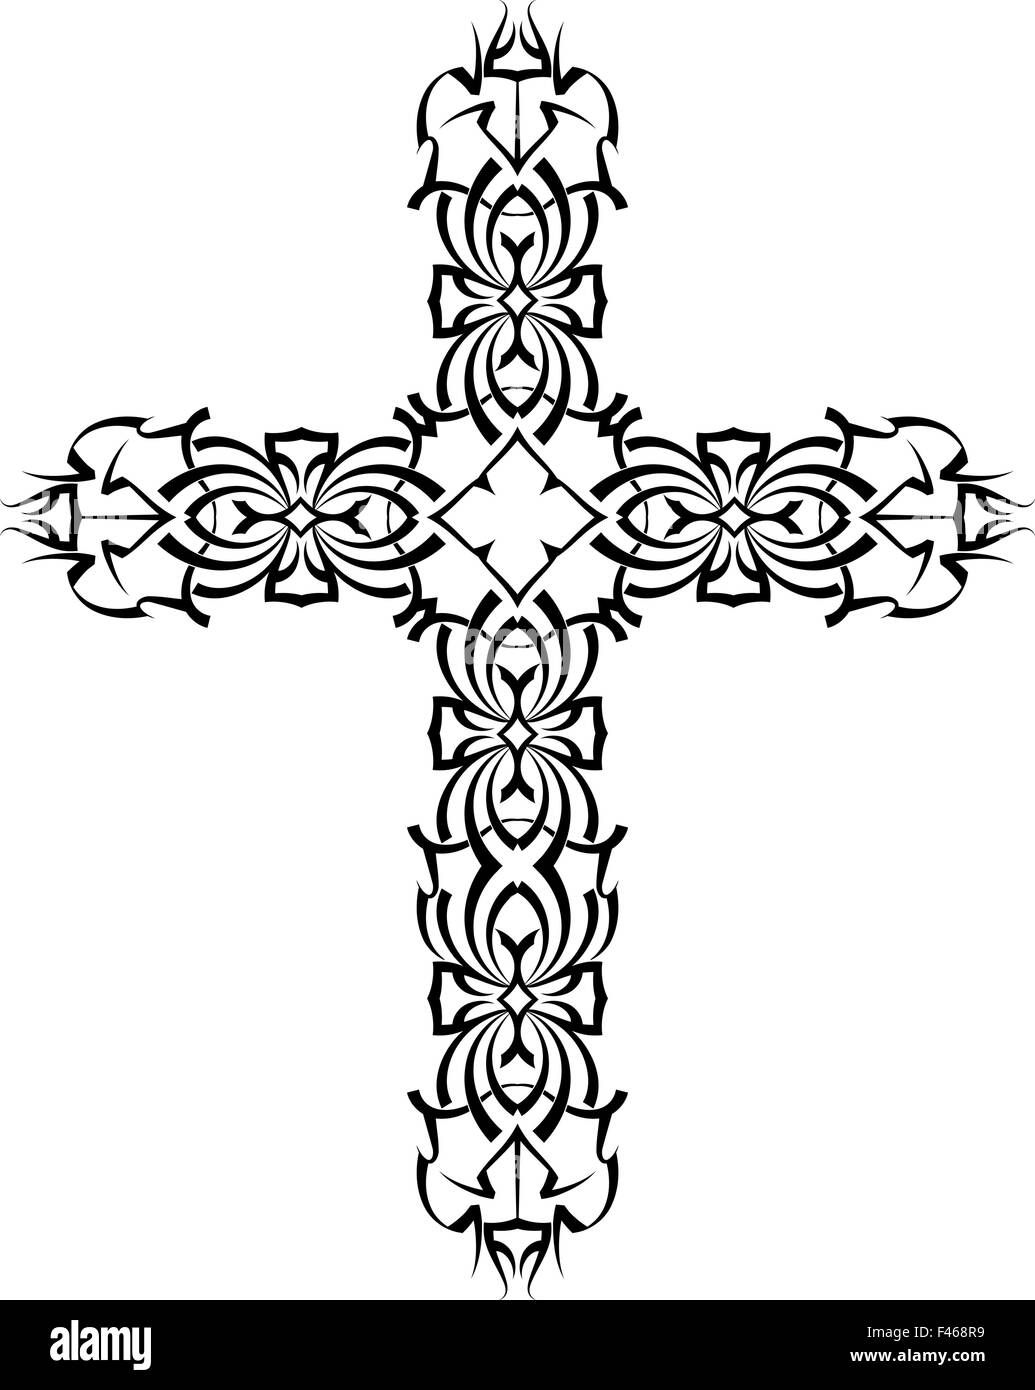 Tattoo christian cross vector art stock vector art illustration tattoo christian cross vector art buycottarizona